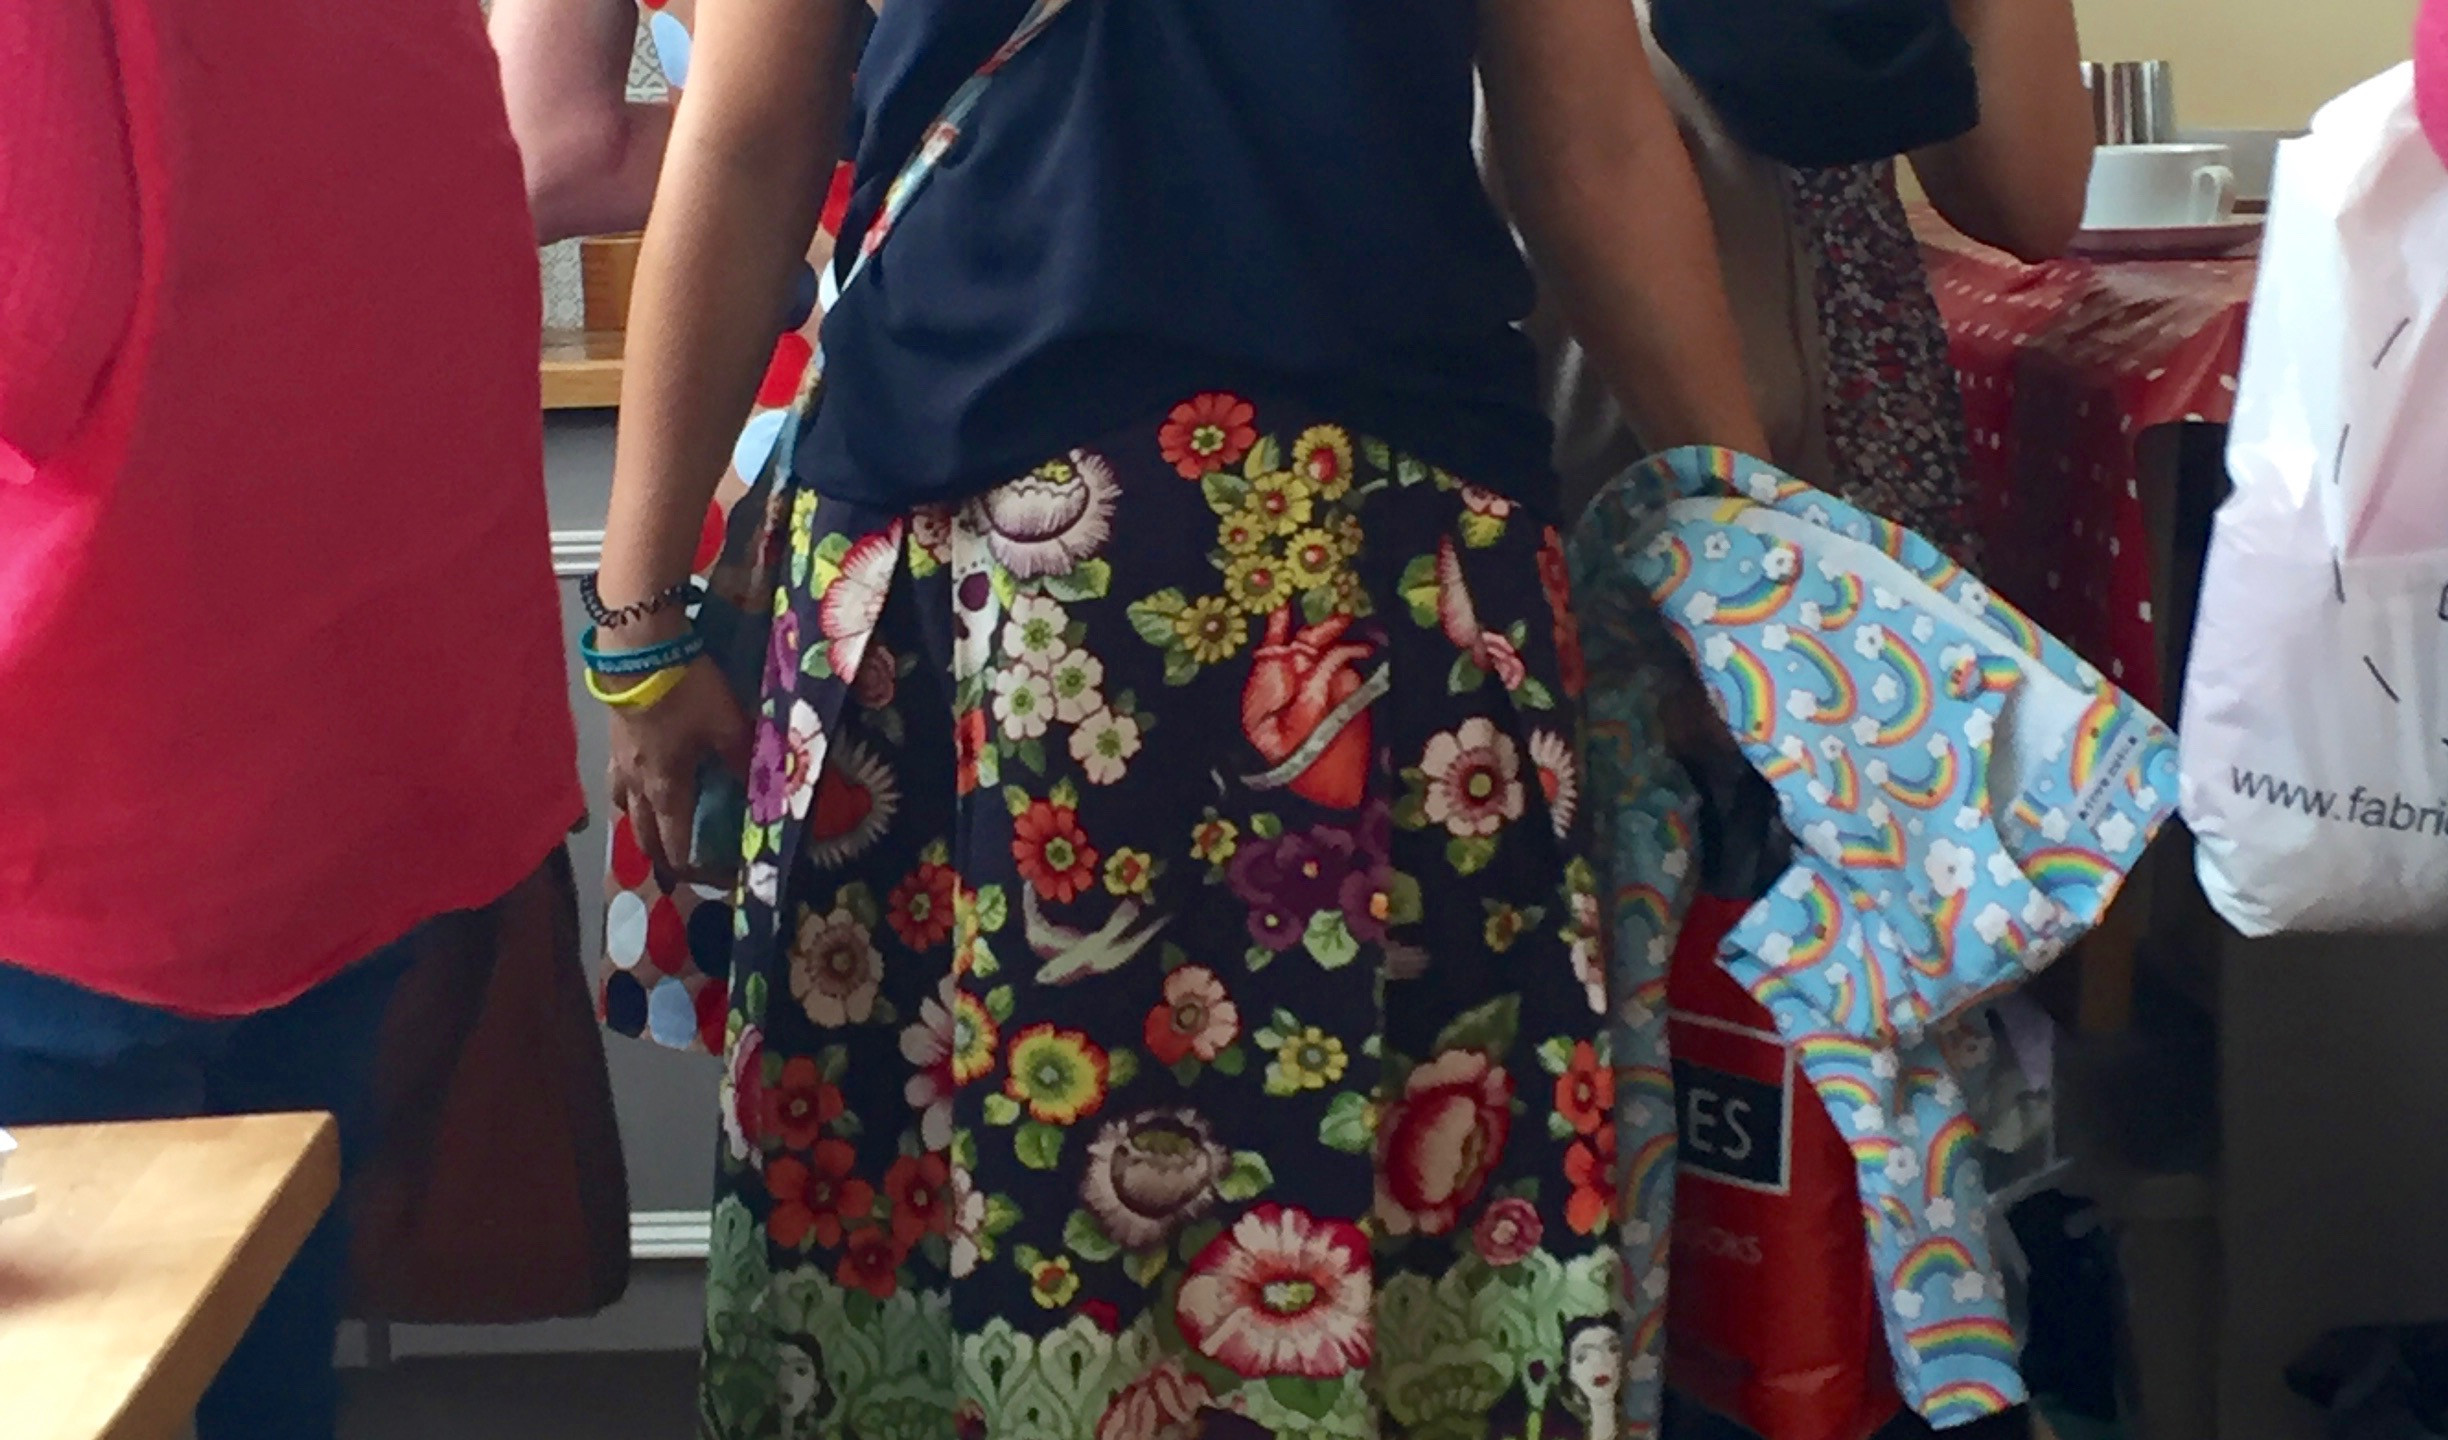 The most GORGEOUS skirt! Alexander Henry fabric is so great with Frida Kahlo and a few random skulls.